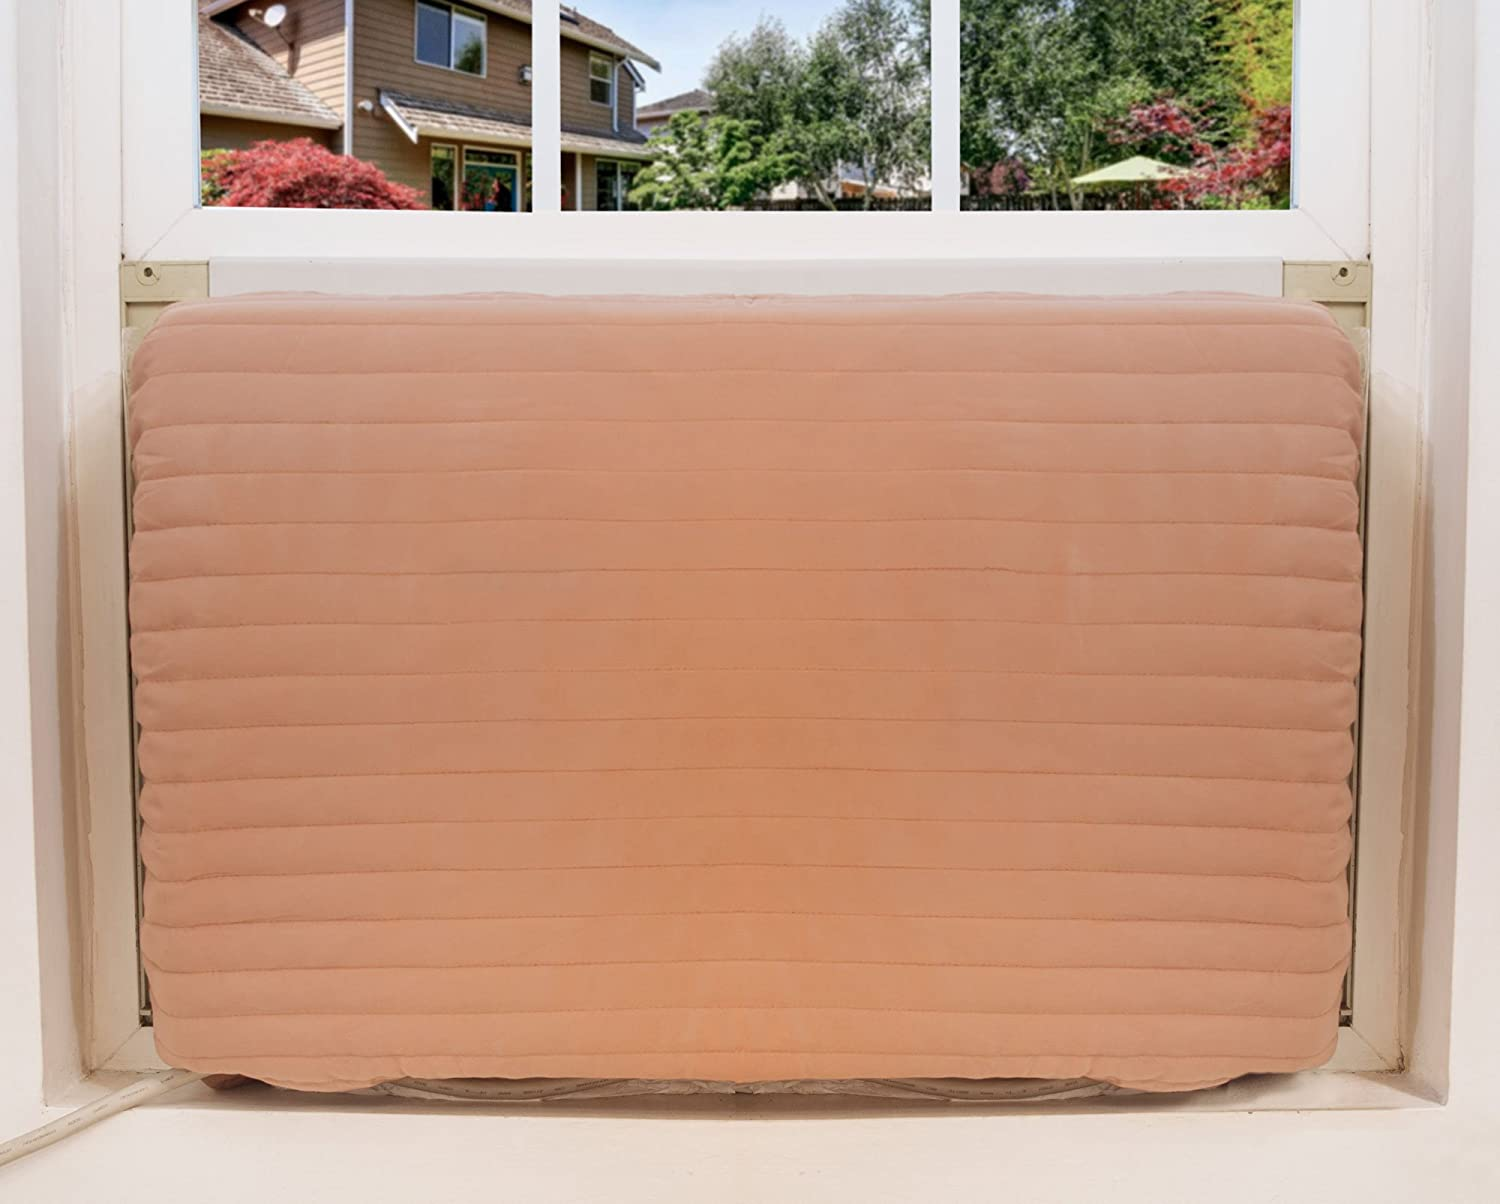 FreshAir Indoor Air Conditioner Cover – Quilted Beige Fabric Cover for Premium Home Insulation – Large Size to Fit Most - 18-20 H x 26-28 W x 2 D Mingfeng